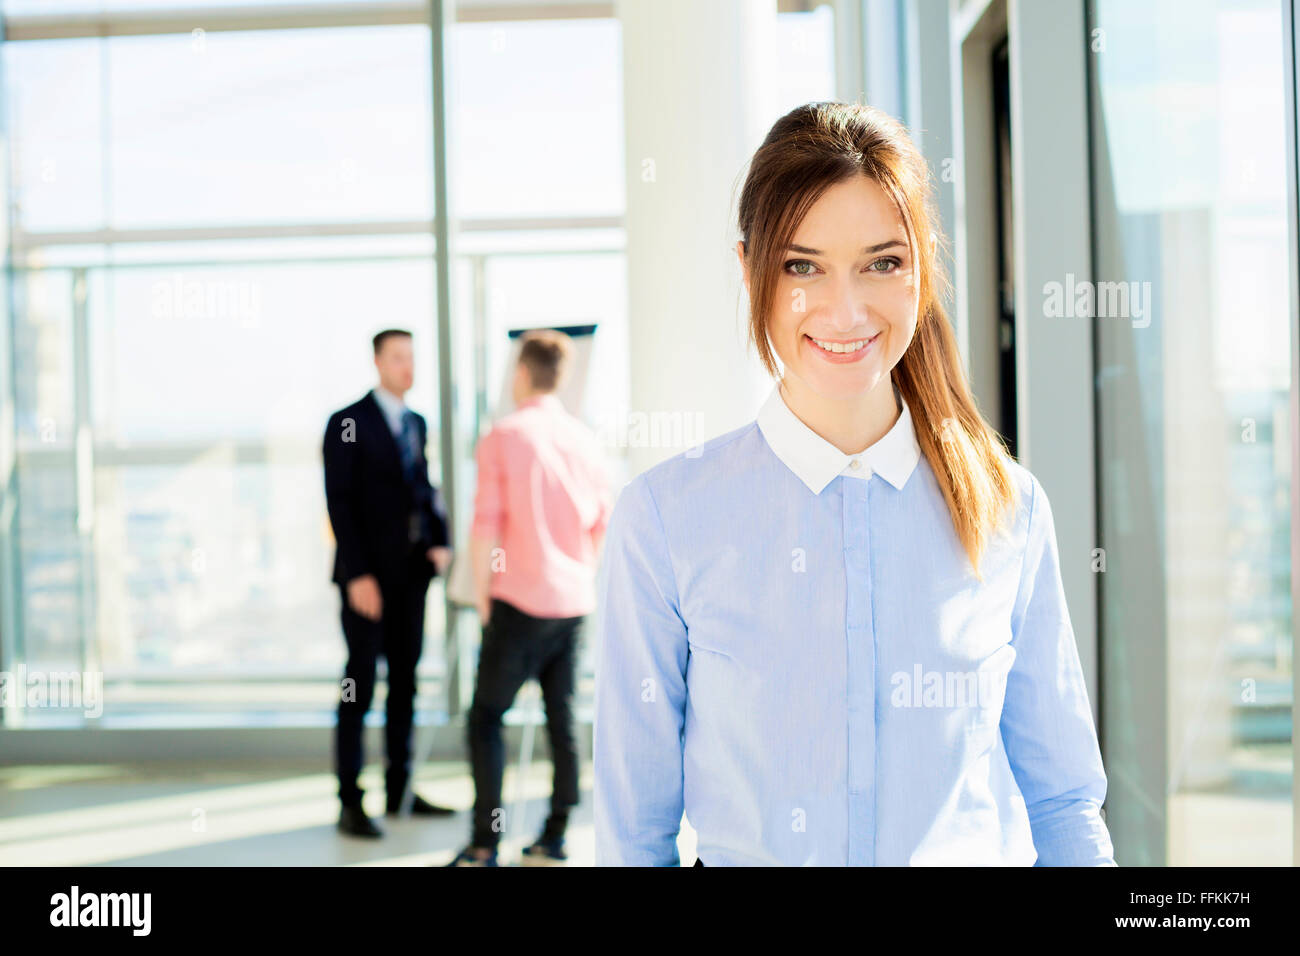 Well-dressed businesswoman with colleagues in background - Stock Image